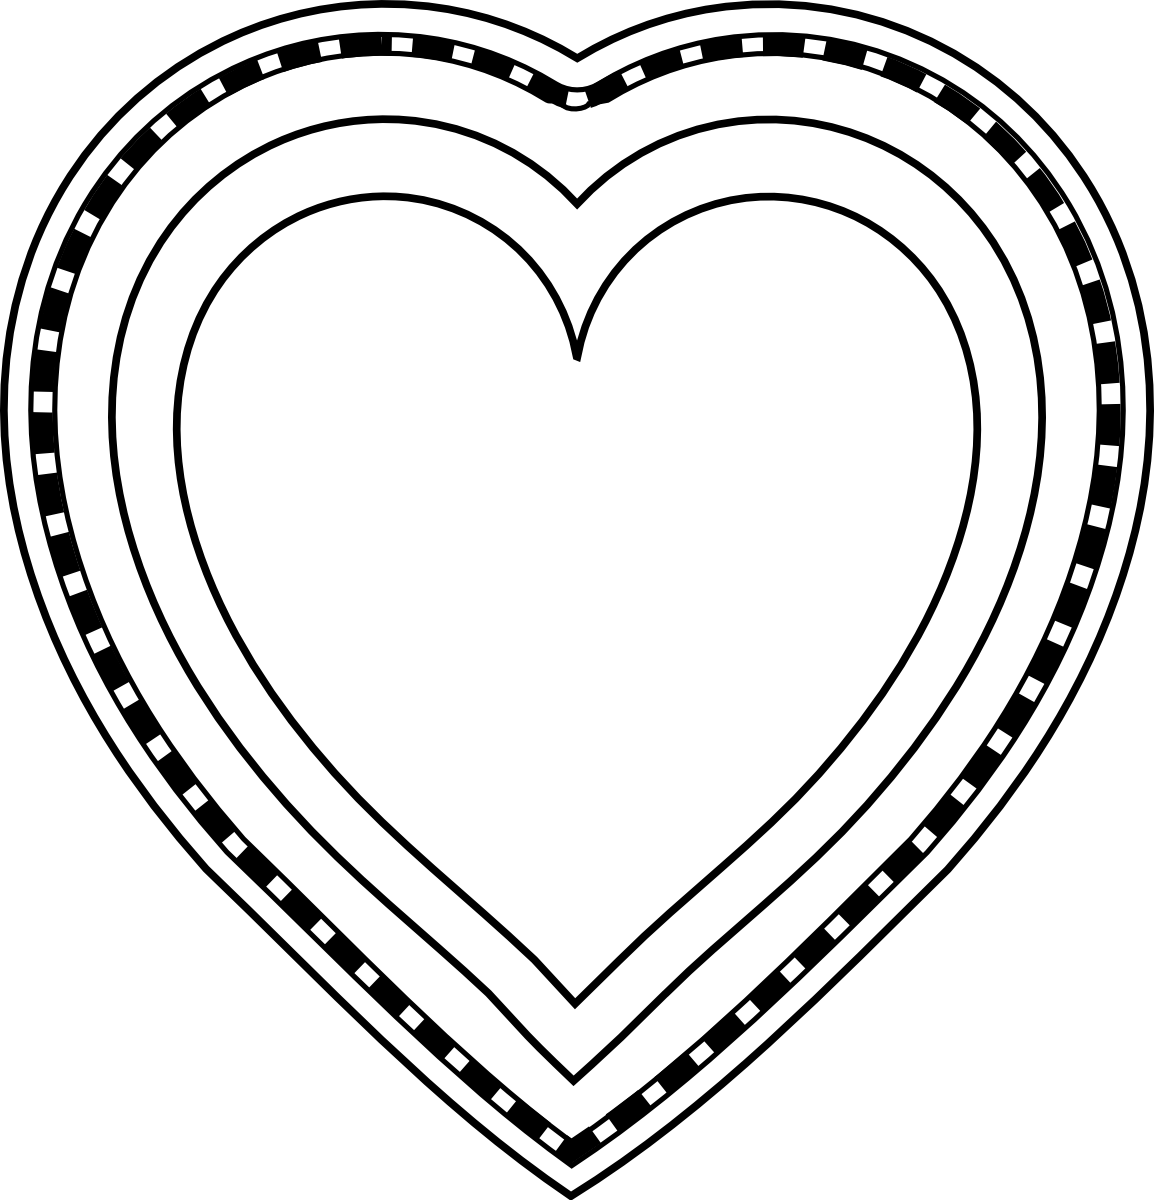 Heart-shaped clipart black and white Free library Heart To Pictures